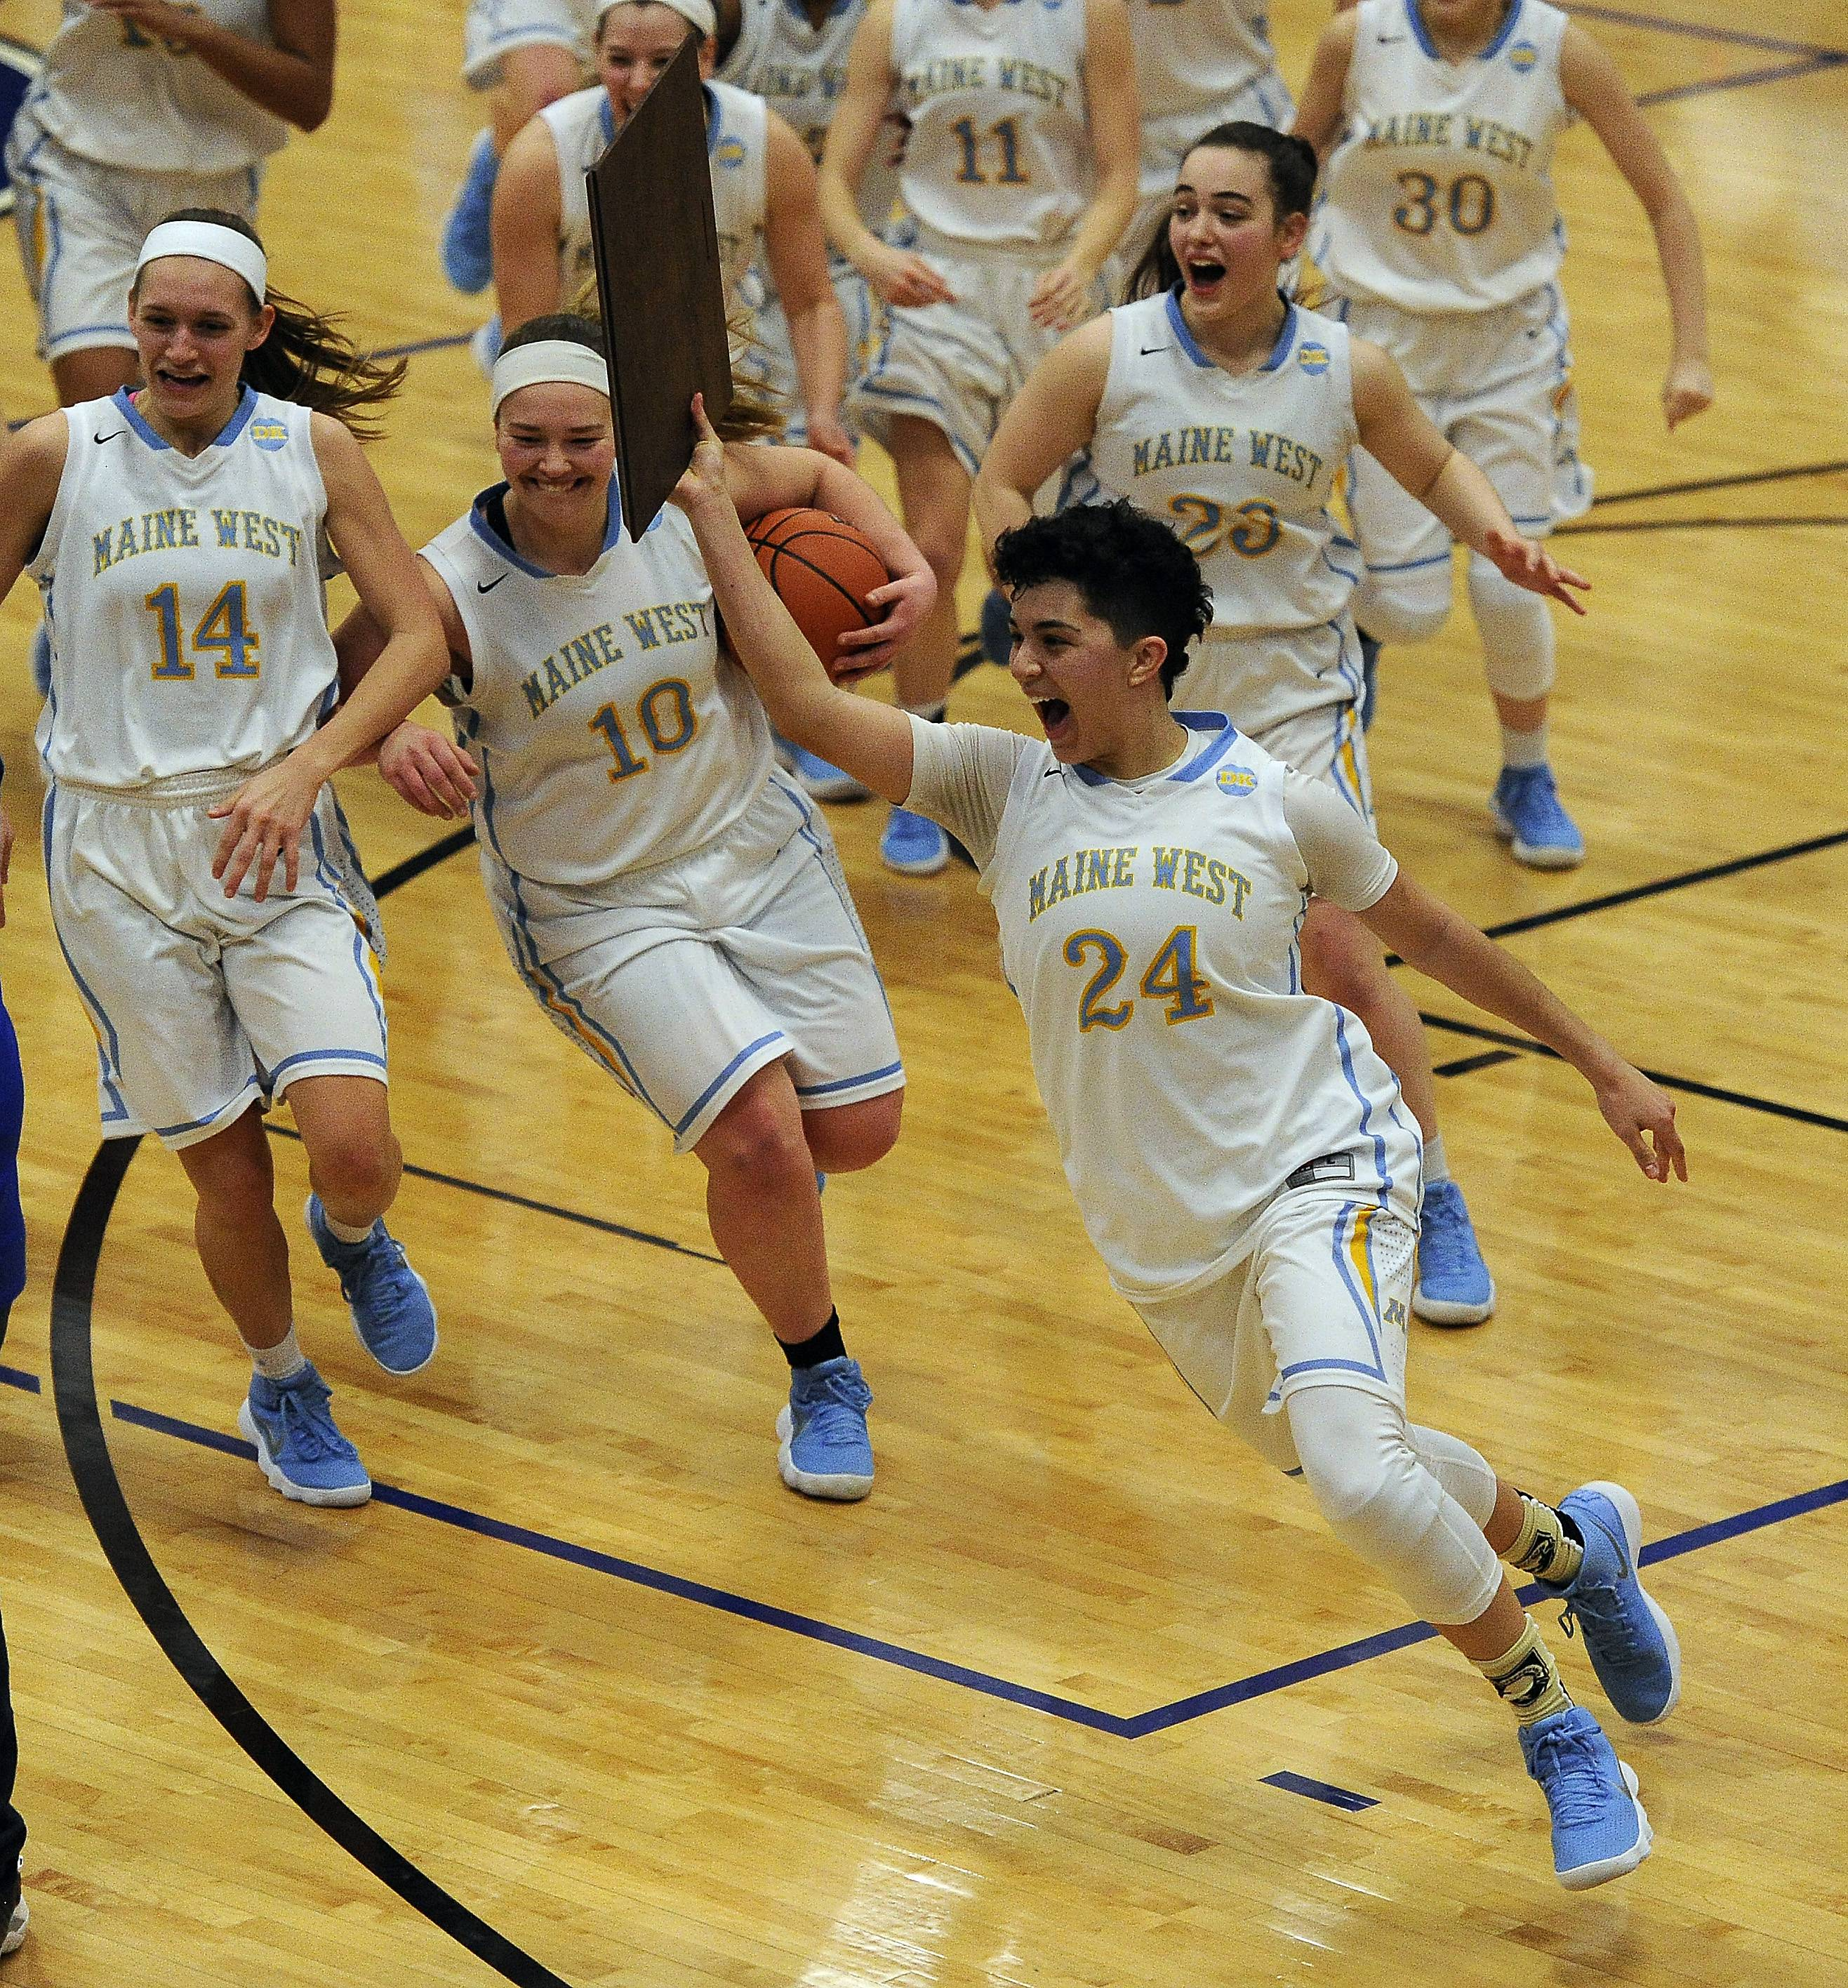 Maine West guard Alisa Fallon holds up the championship plaque, running with teammates in tow after the Warriors' victory in the Class 4A sectional championship game at Maine East.